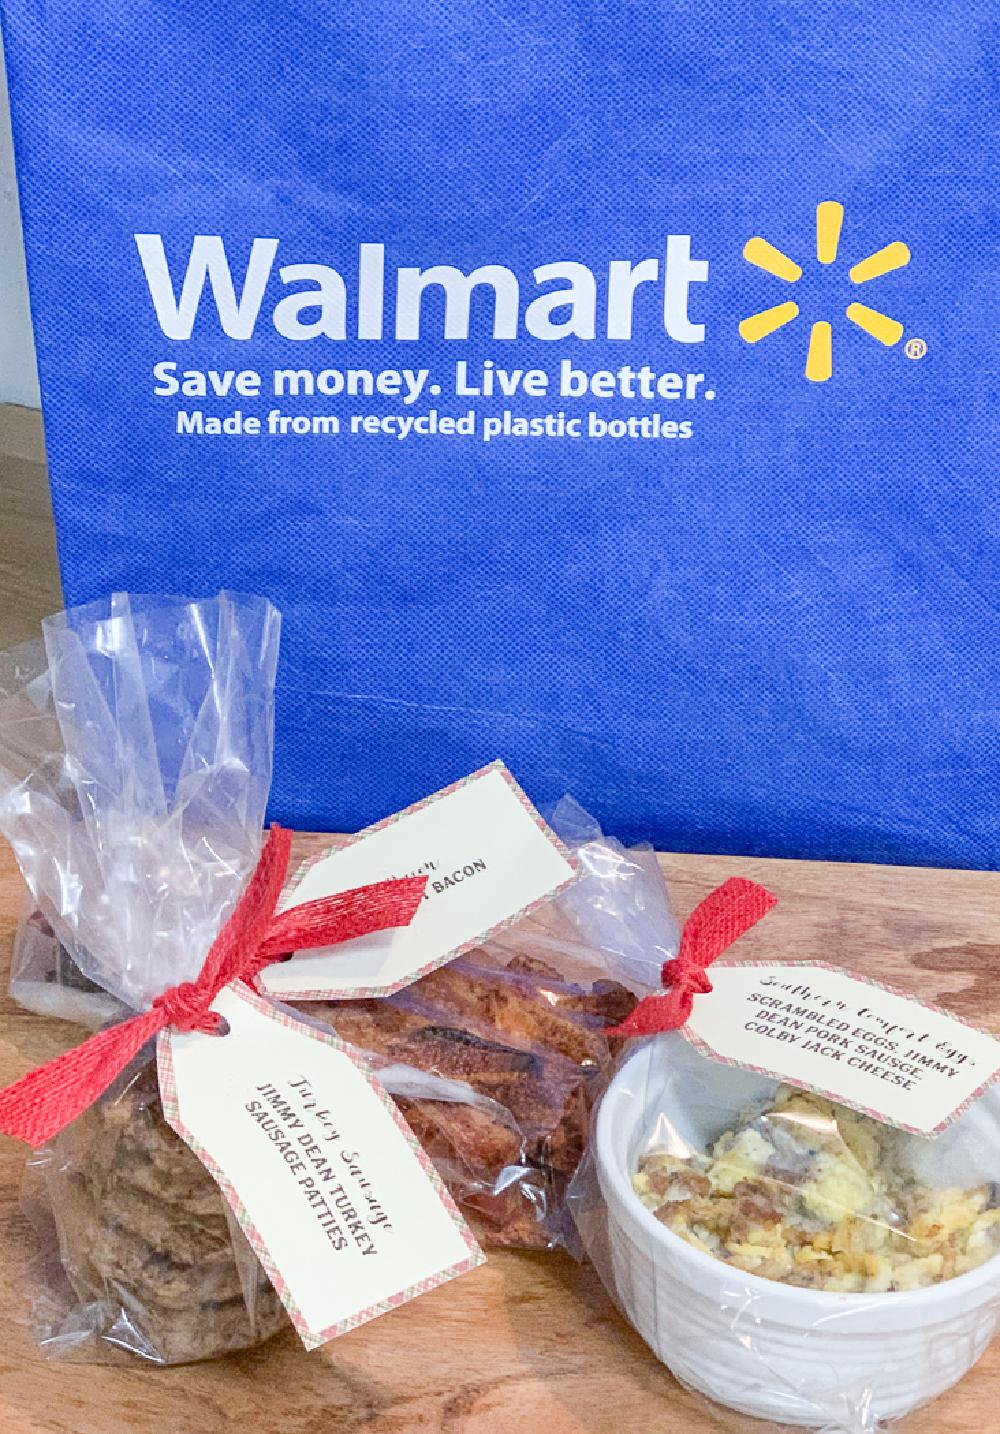 Cello Bags with Breakfast Food Walmart Bag